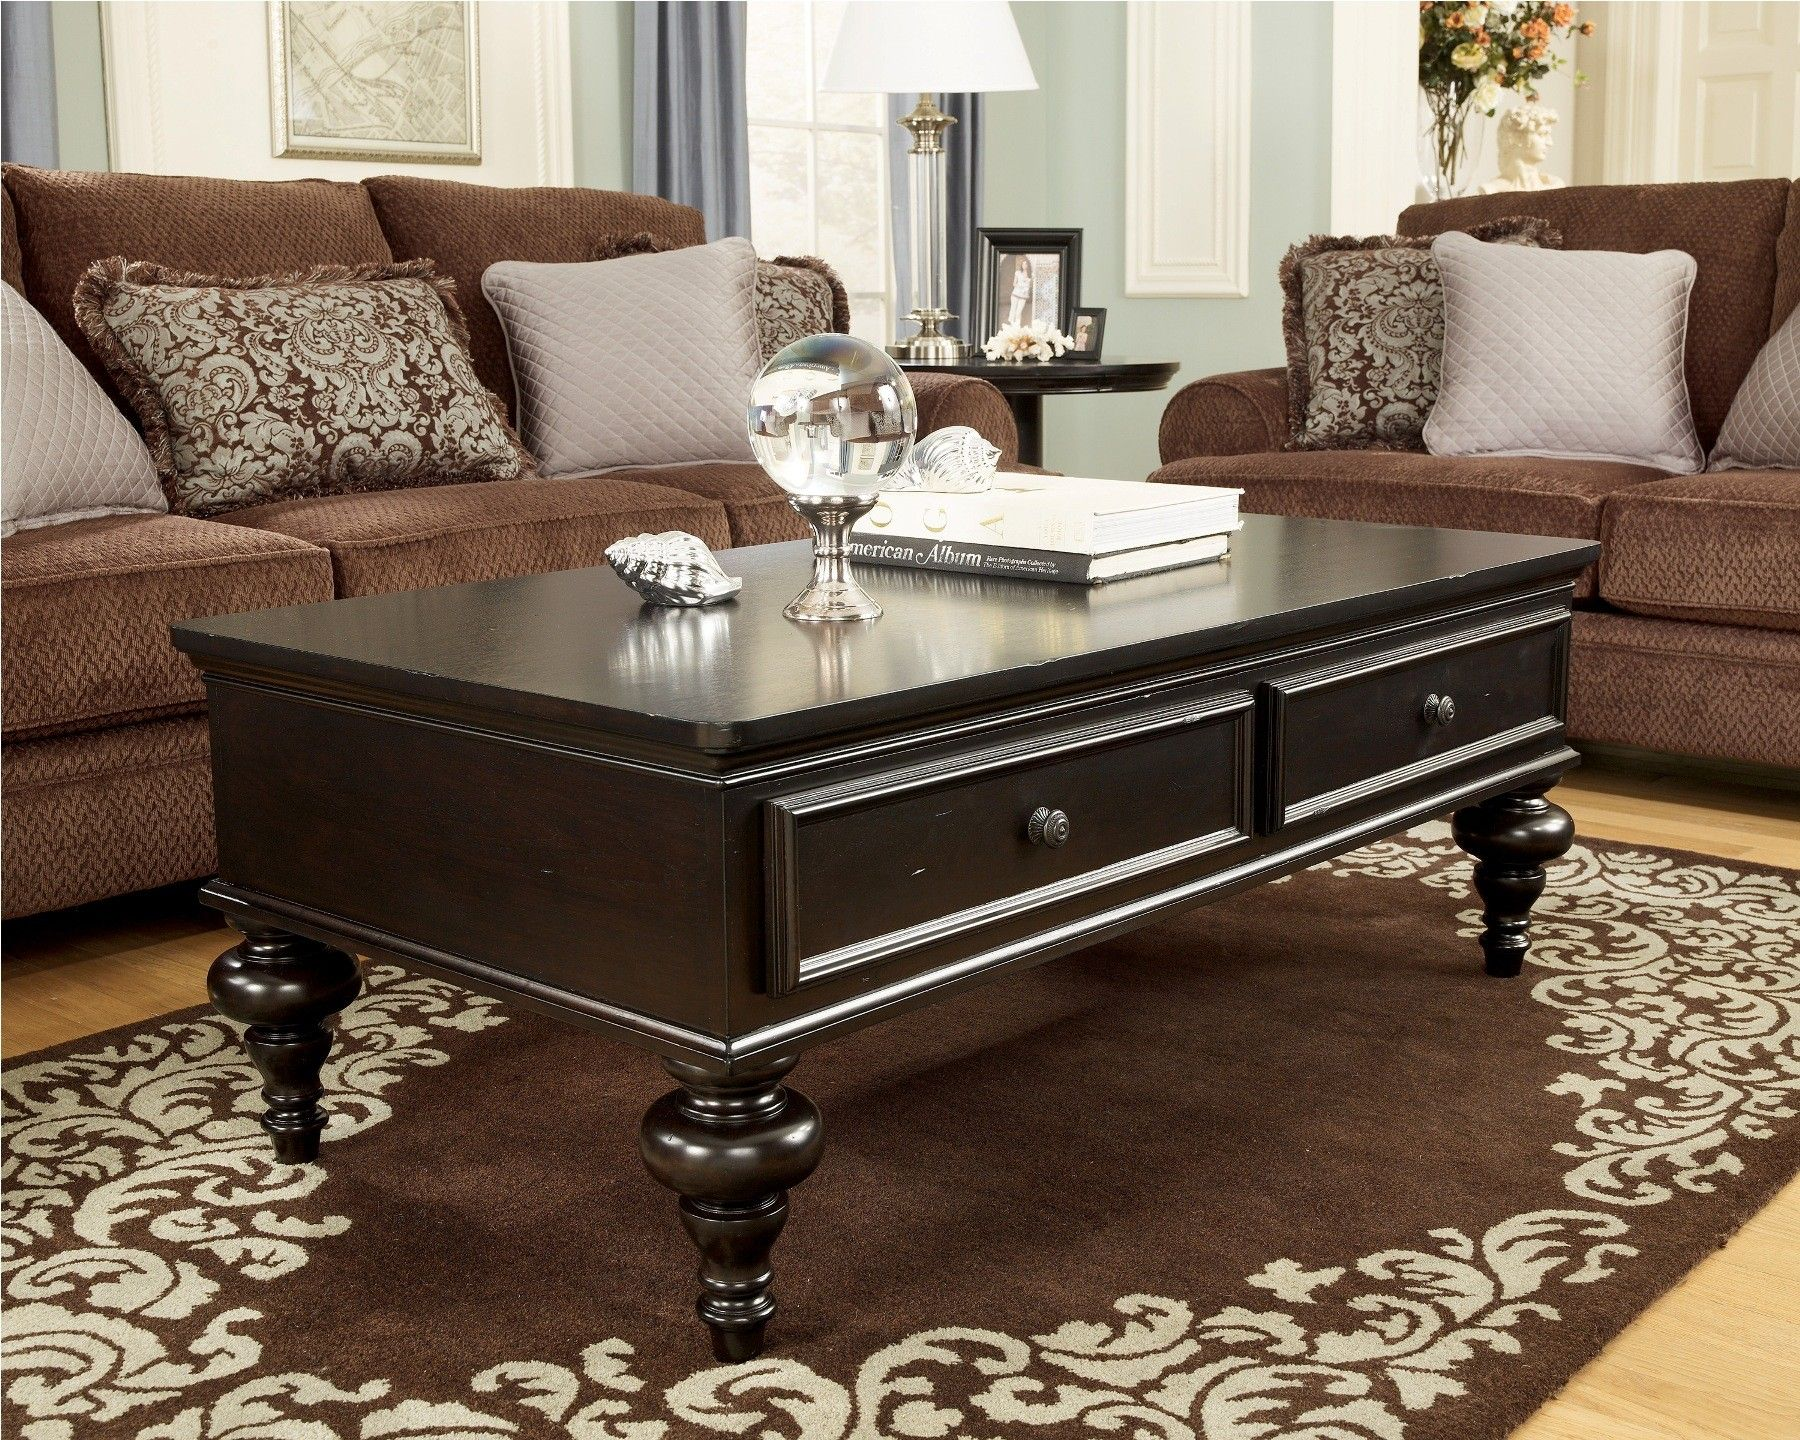 Ashley Millennium Furniture Coffee Table Ashley Furniture - Rectangular cocktail table by ashley furniture